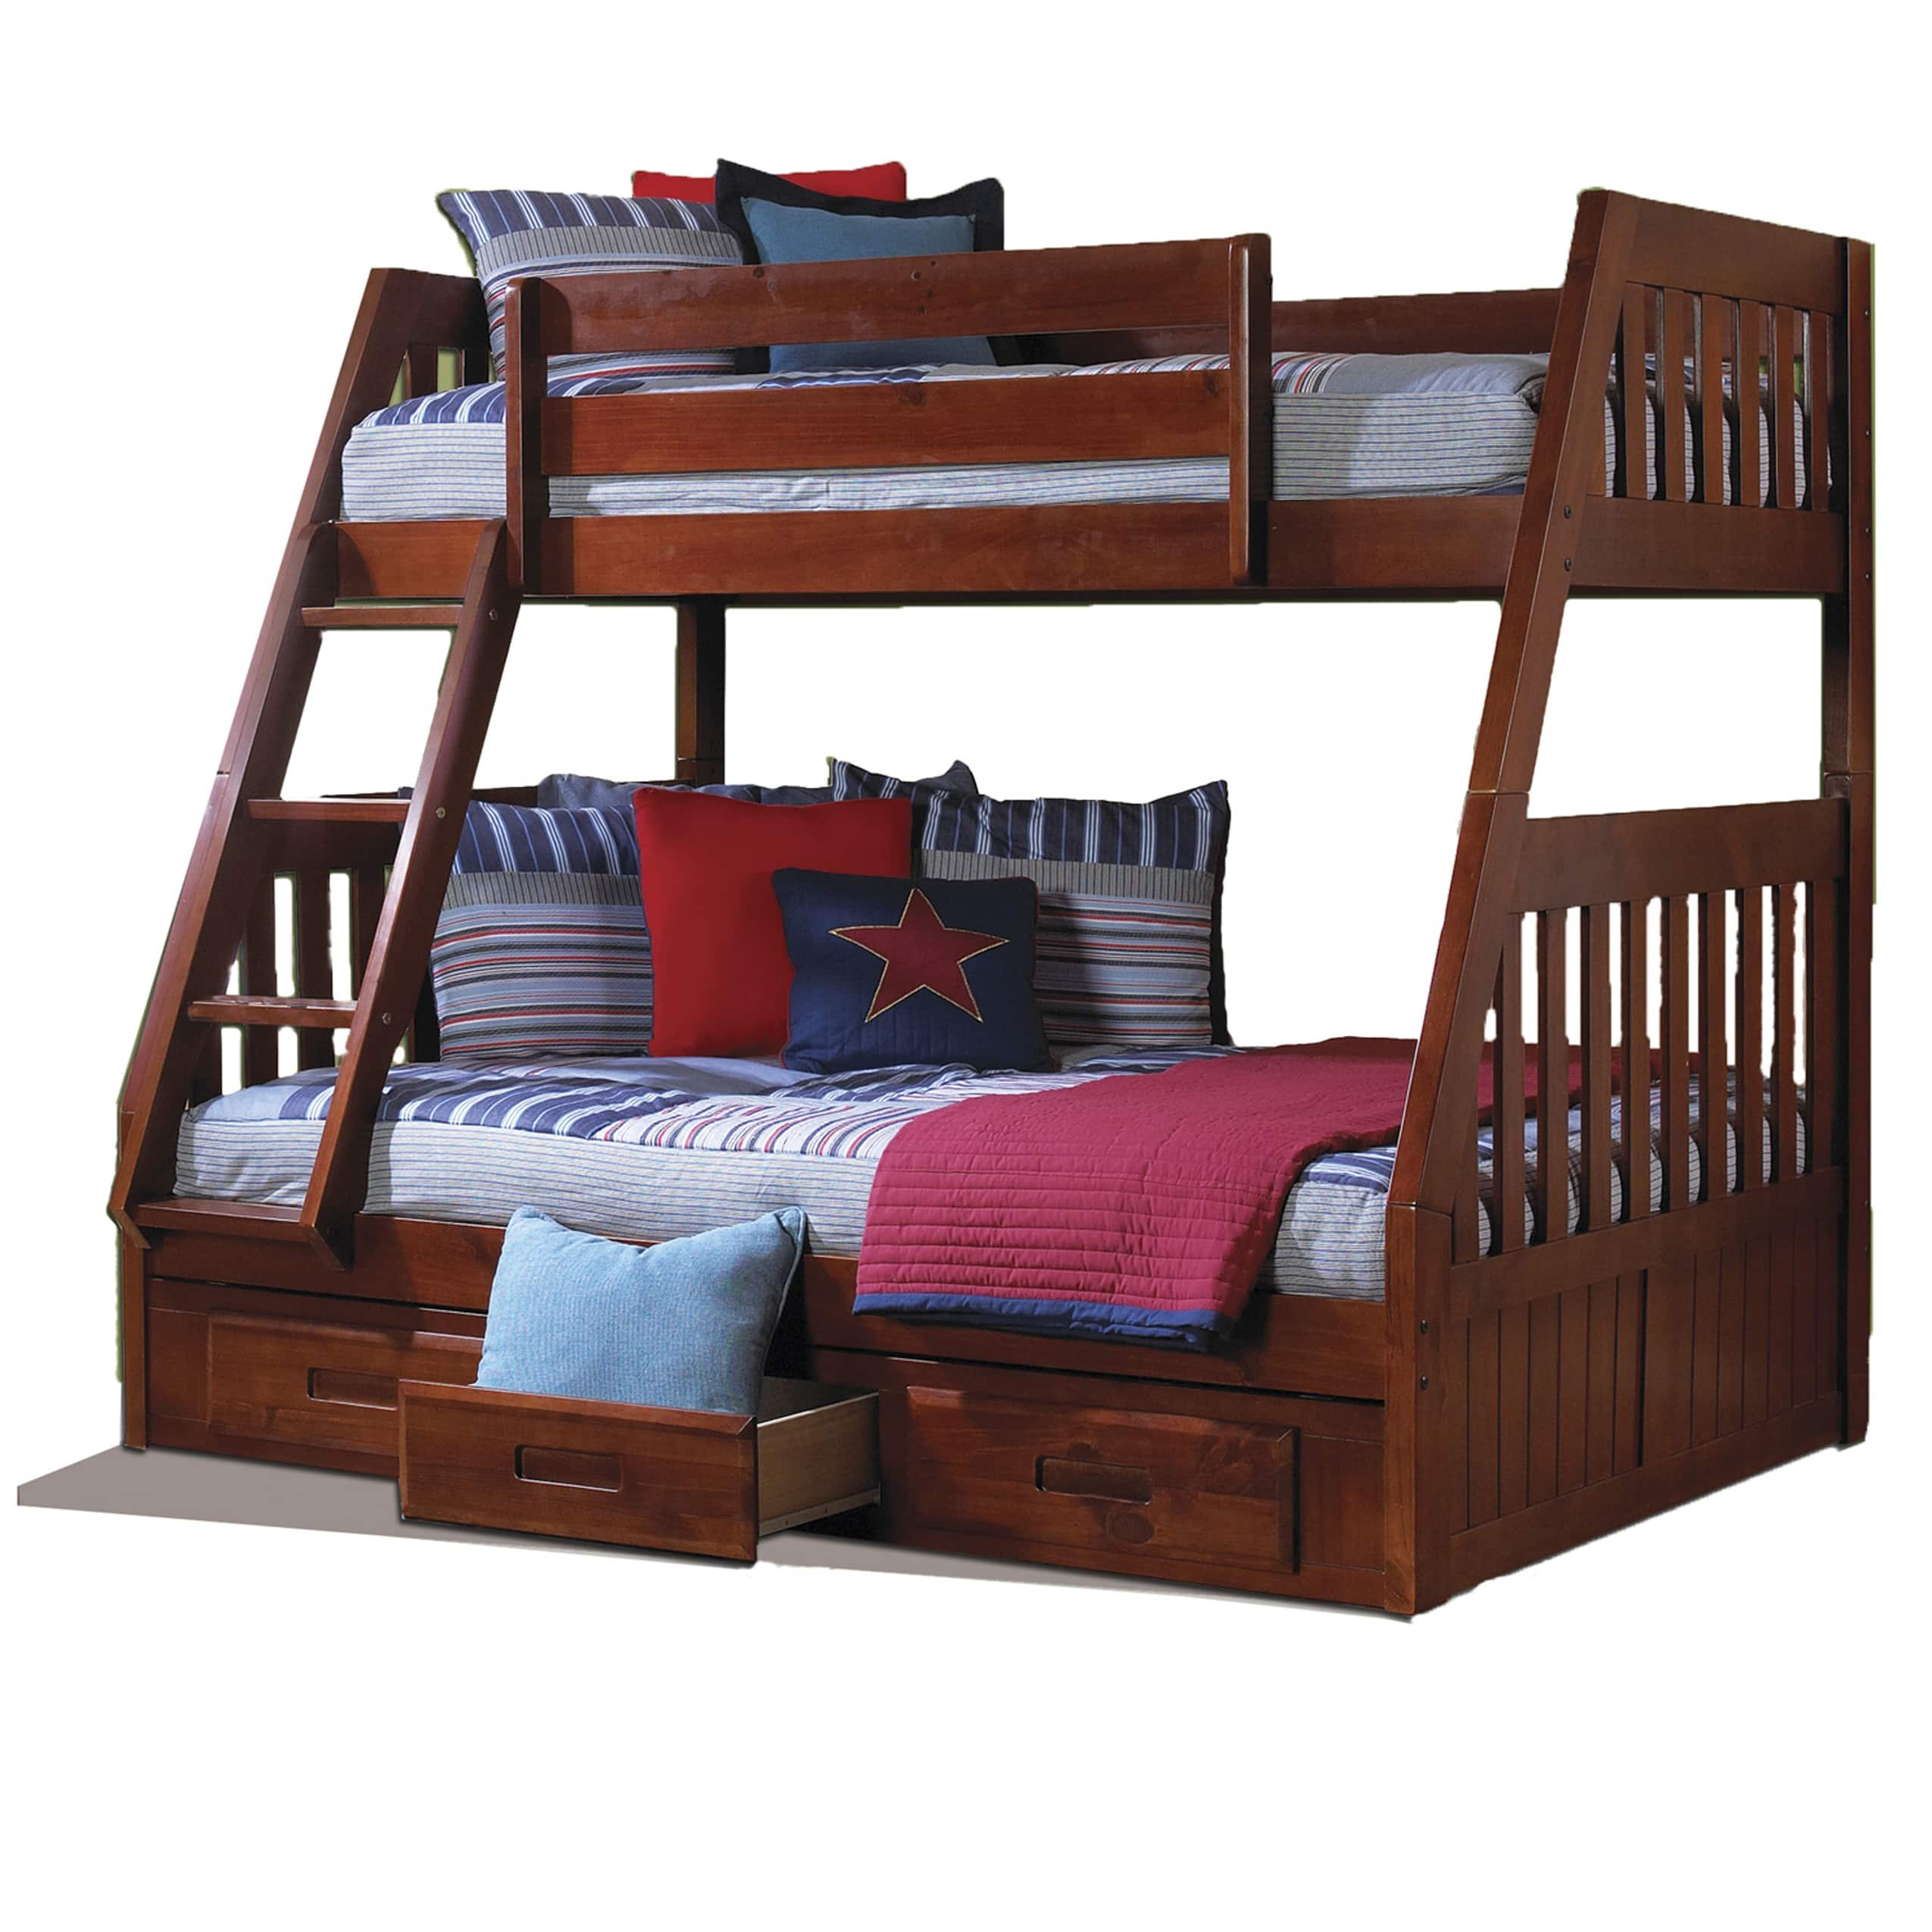 American Furniture Classics Merlot Solid Pine Twin-over-full 3-drawer Bunk Bed with Desk